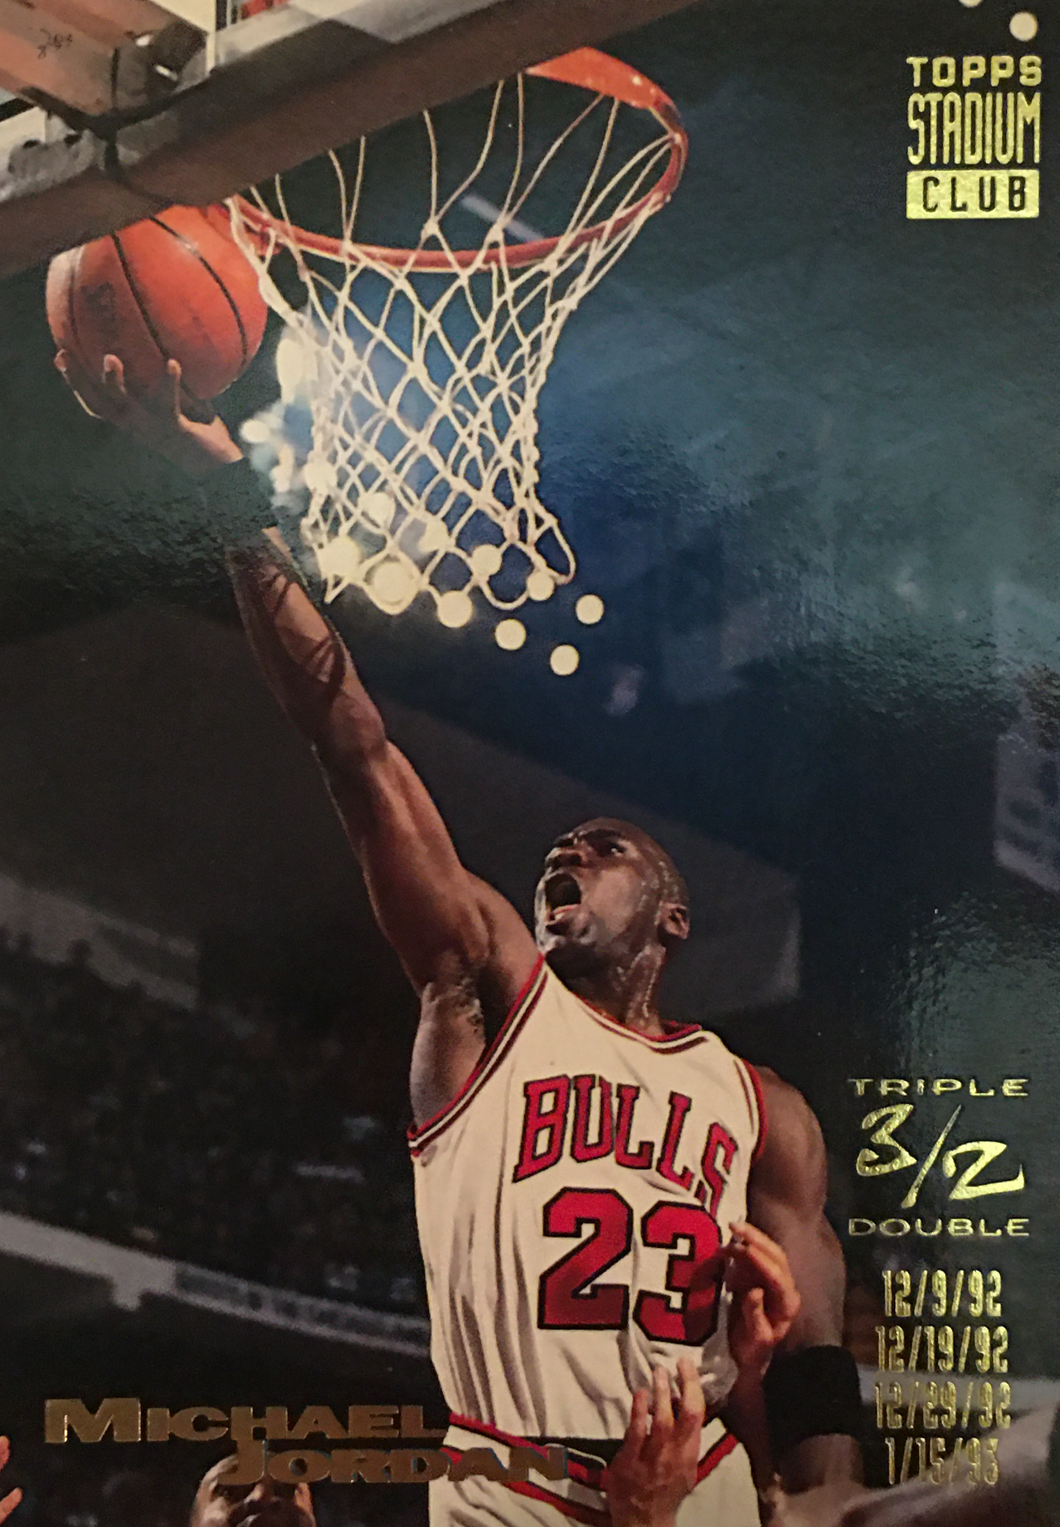 Michael Jordan Topps stadium club #1